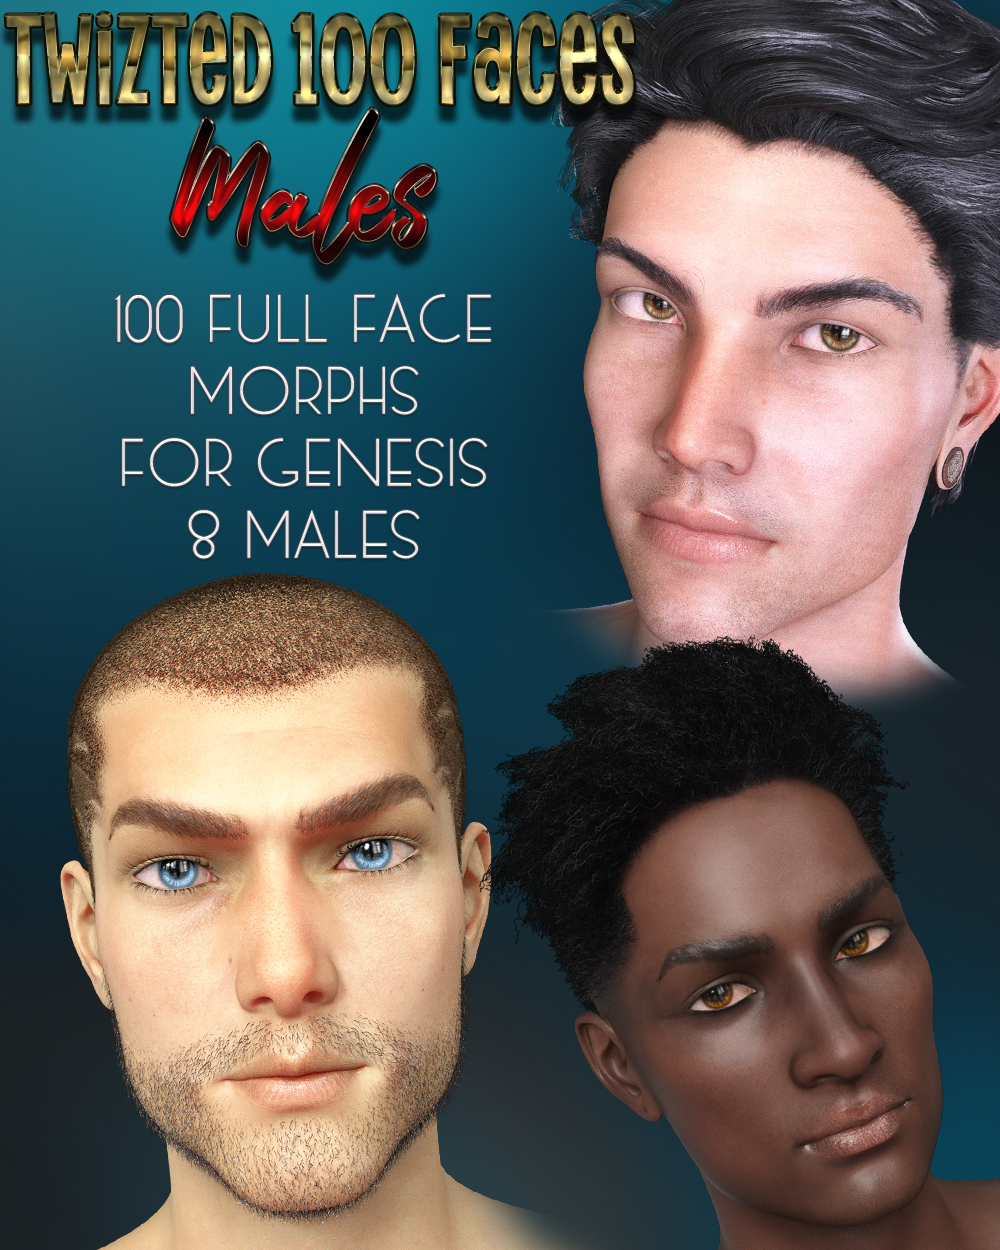 Twizted 100 Faces Males for Genesis 8 Males